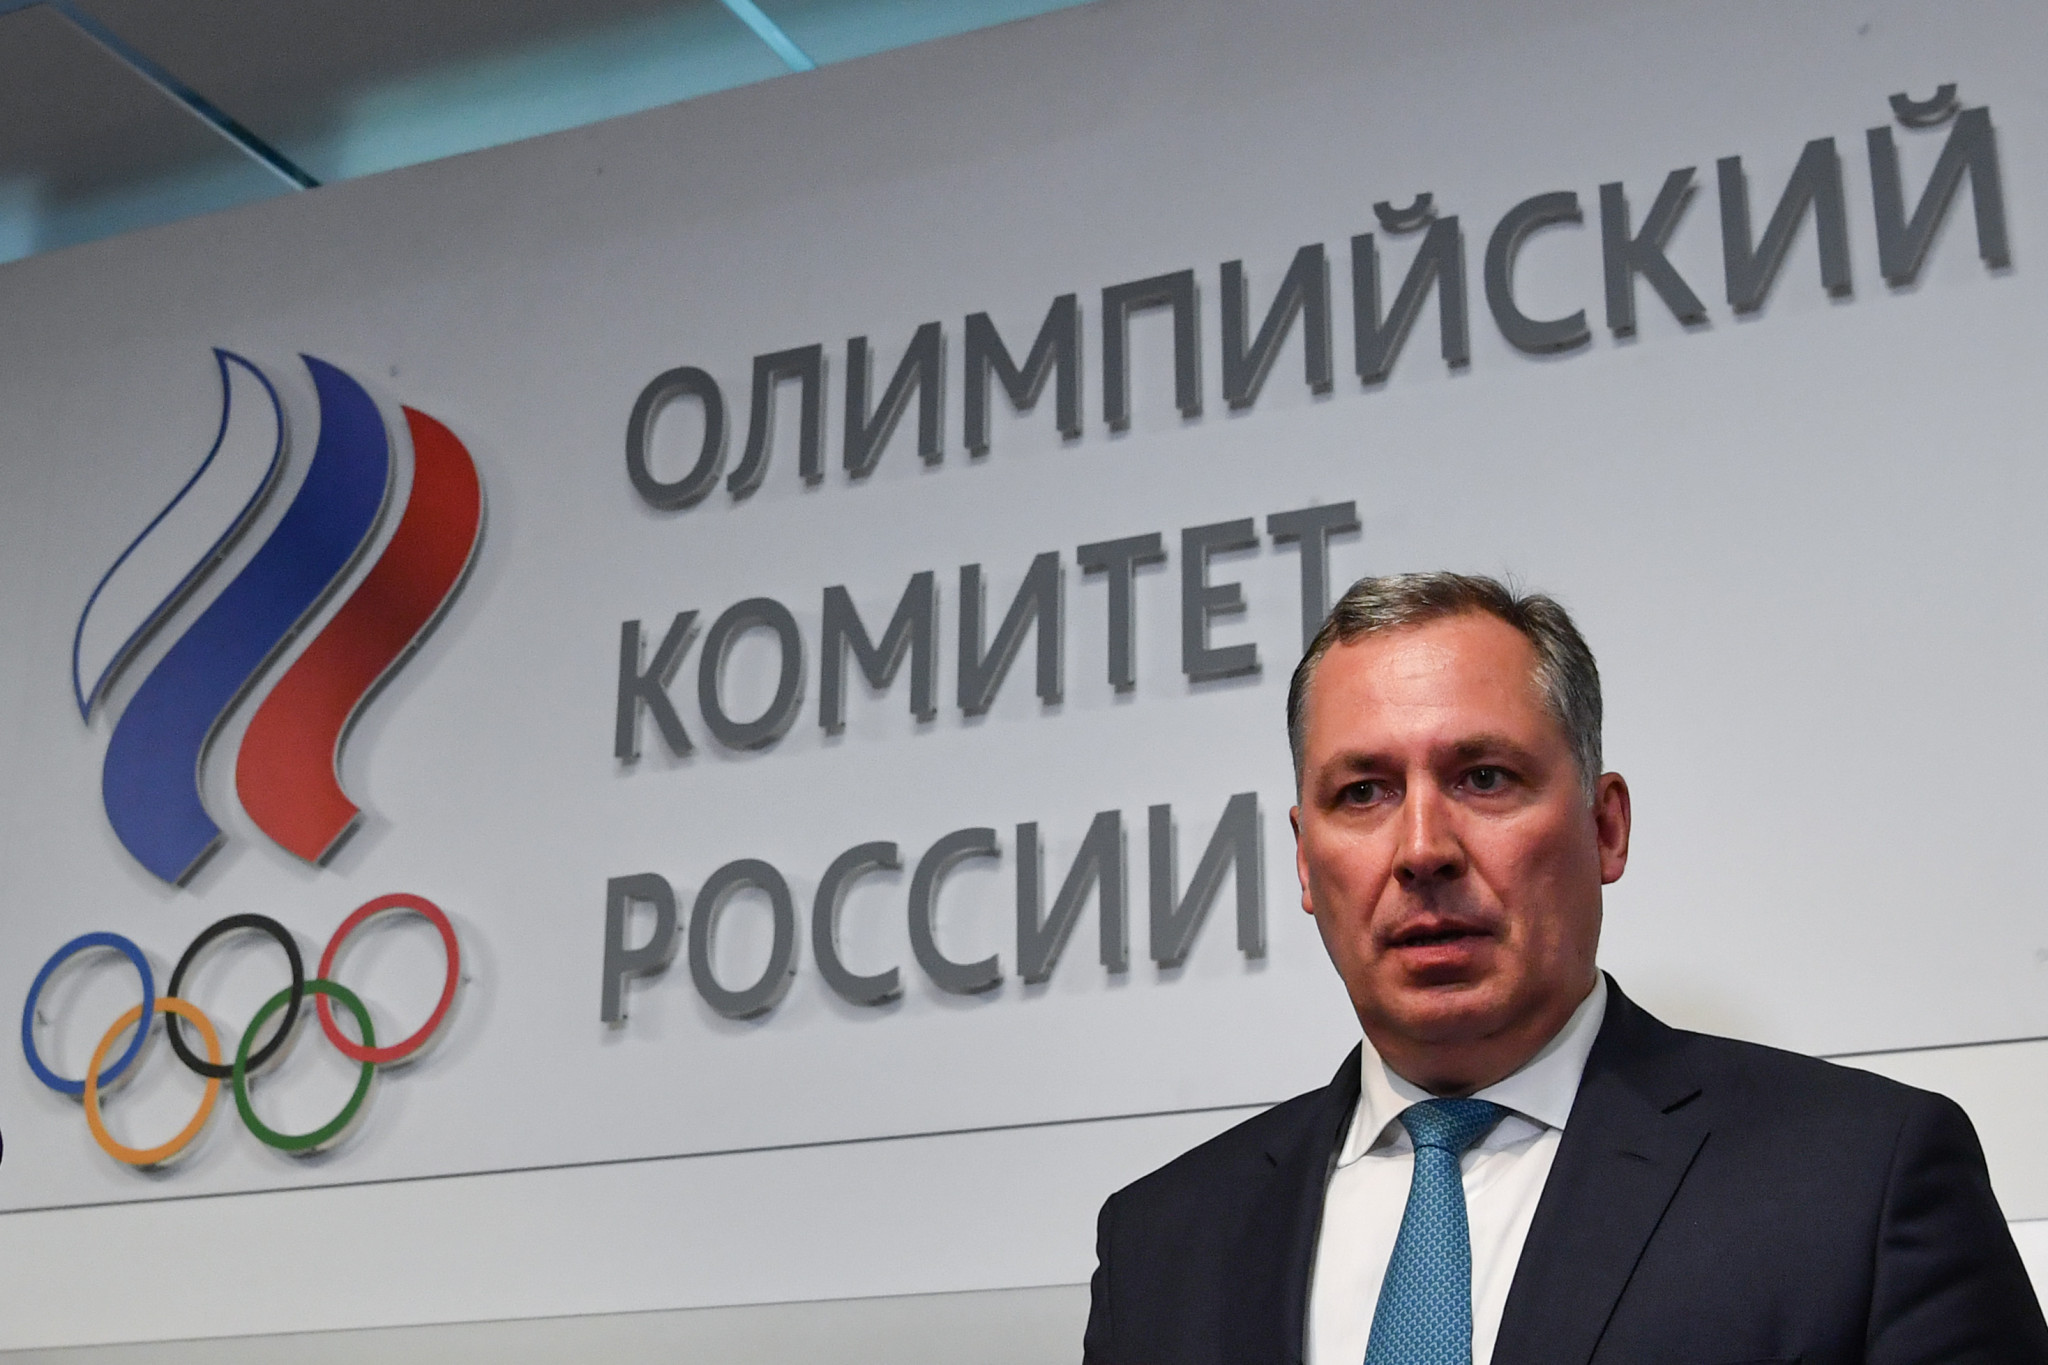 Russian Olympic Committee President Stanislav Pozdnyakov has confirmed that Russia will replace 10 athletes in the Minsk 2019 athletics team without neutral status ©Getty Images